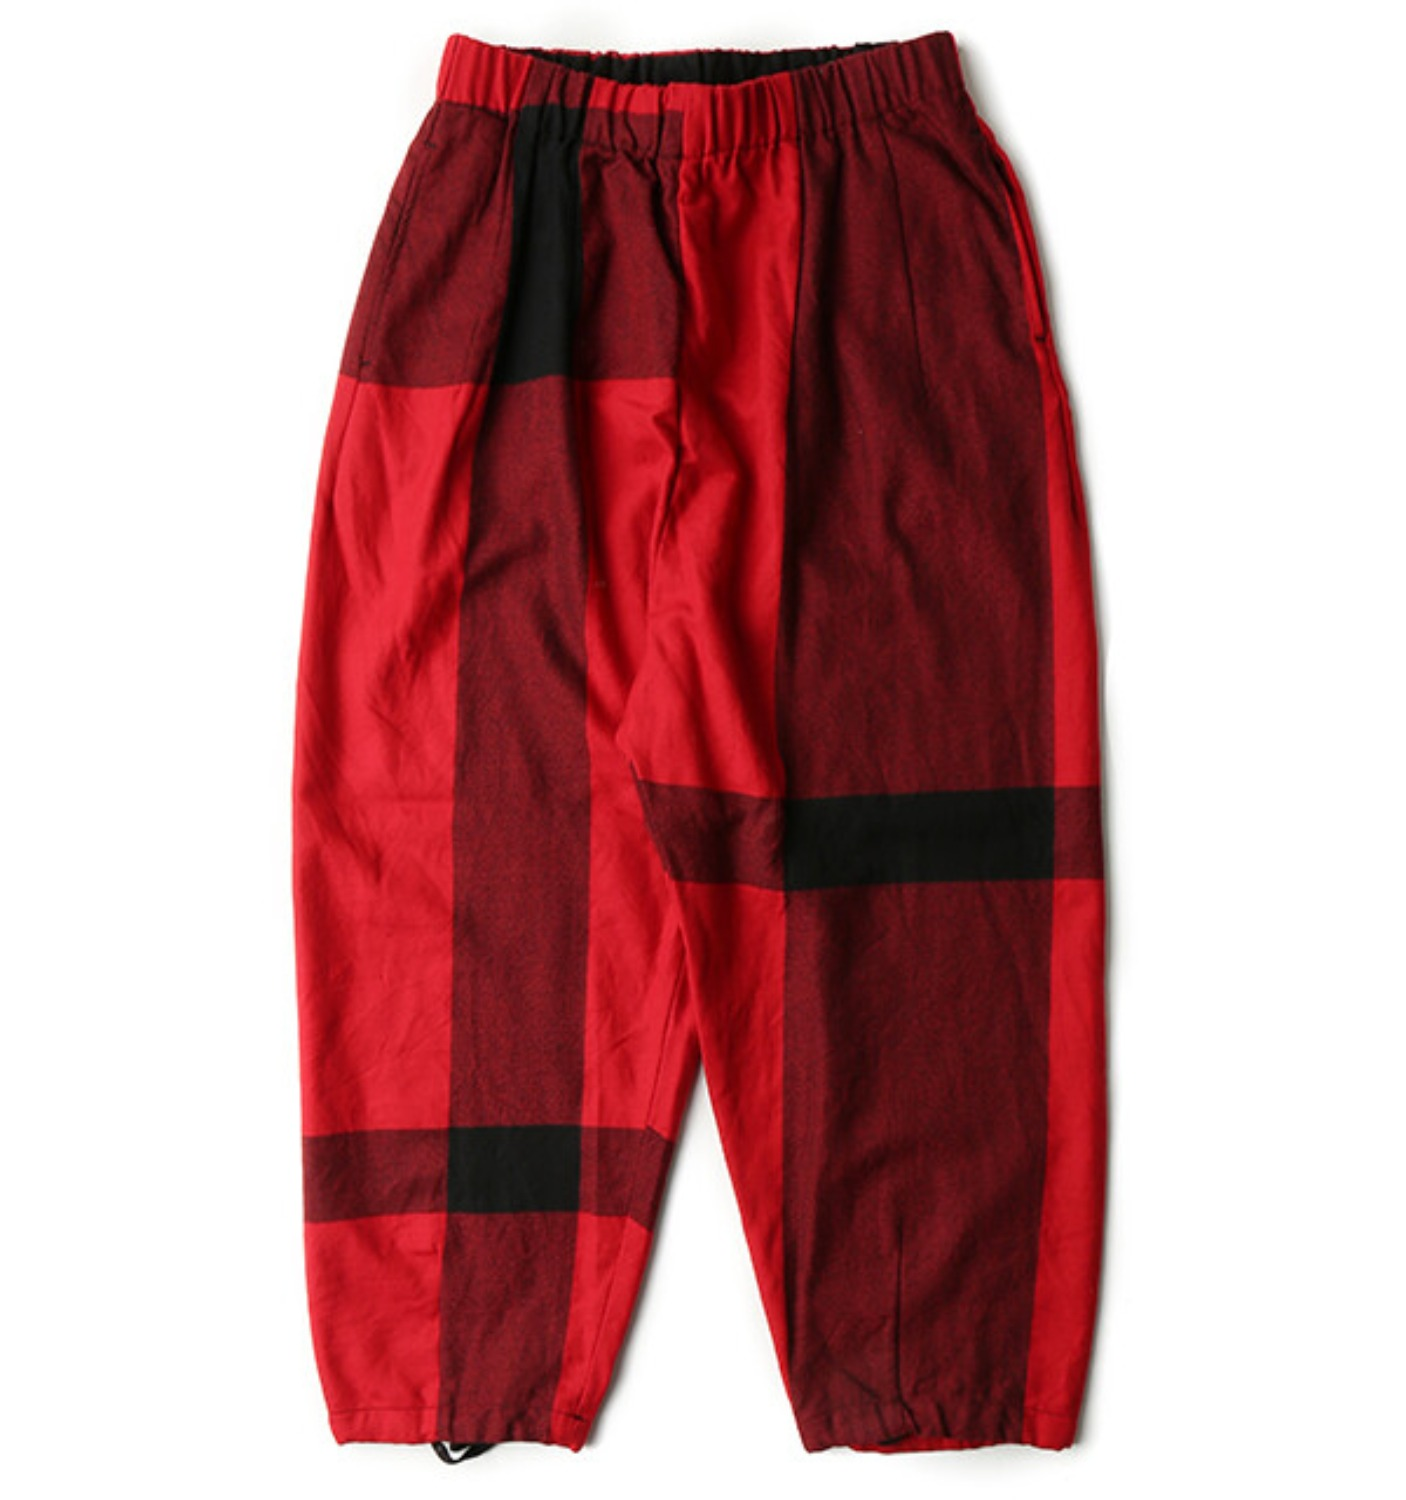 BALLOON PANT RED/BLACK BIG PLAID WORSTED WOOL